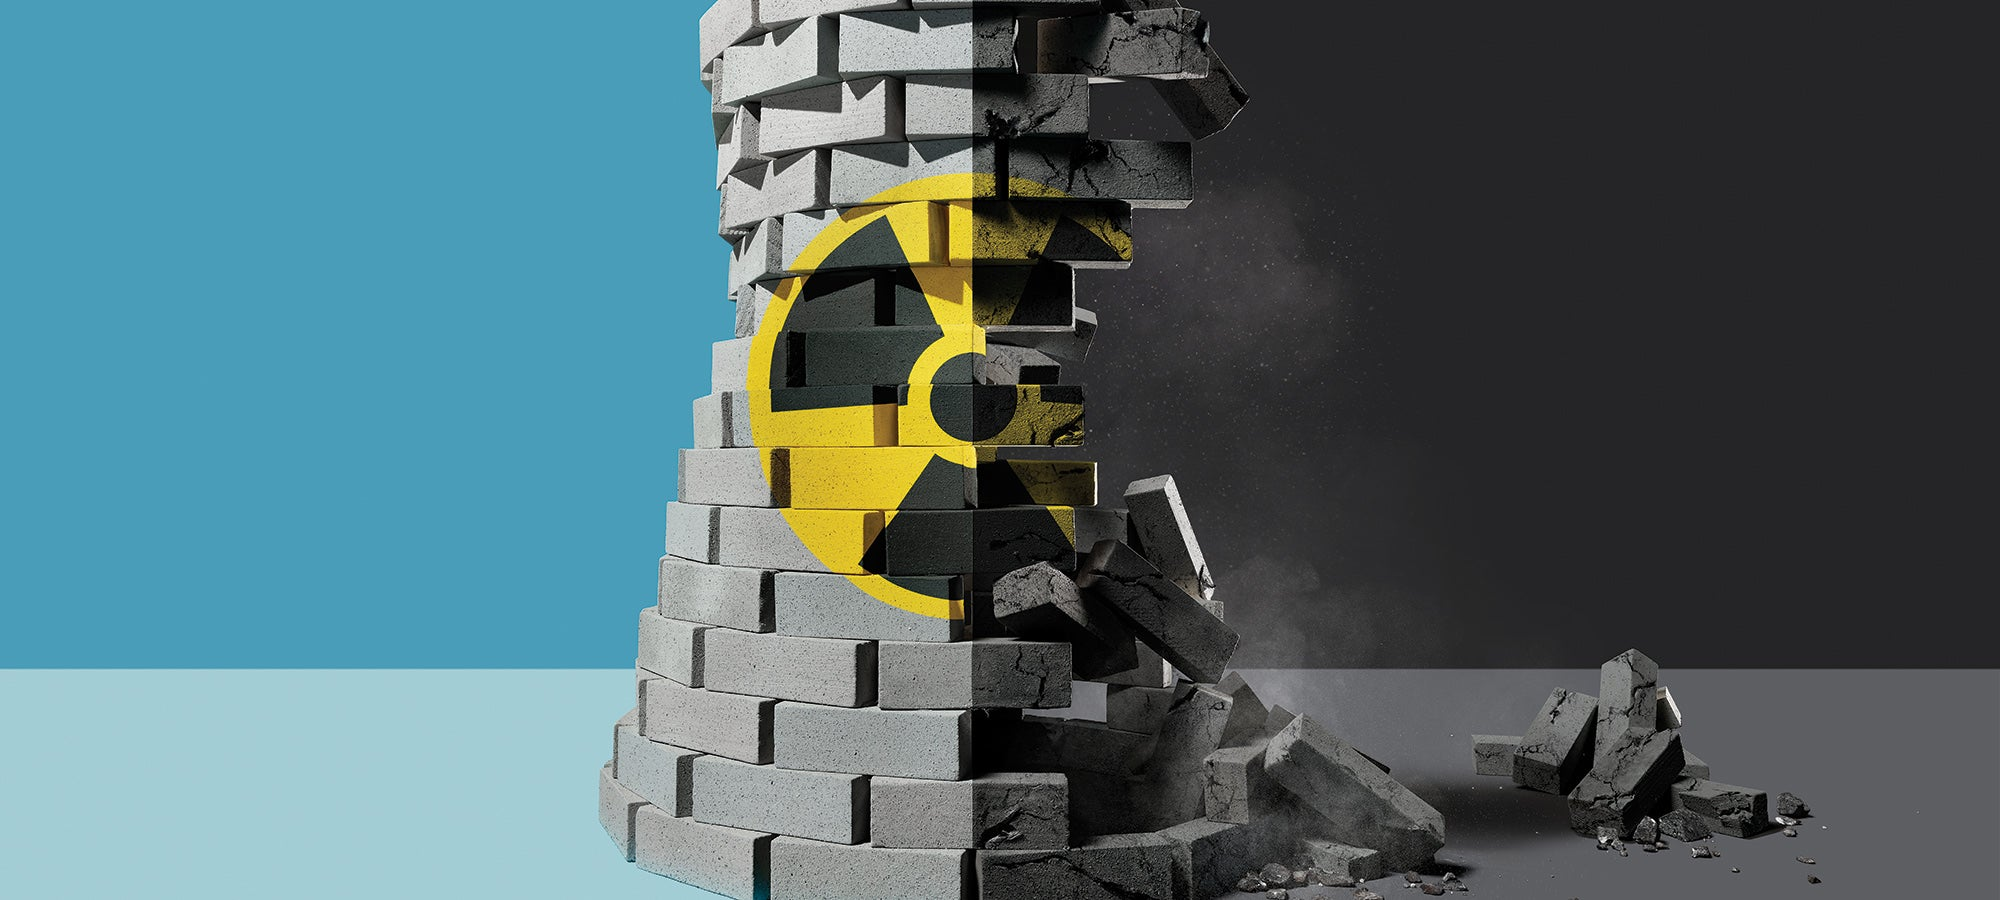 Why can't we decide what to do about nuclear energy?